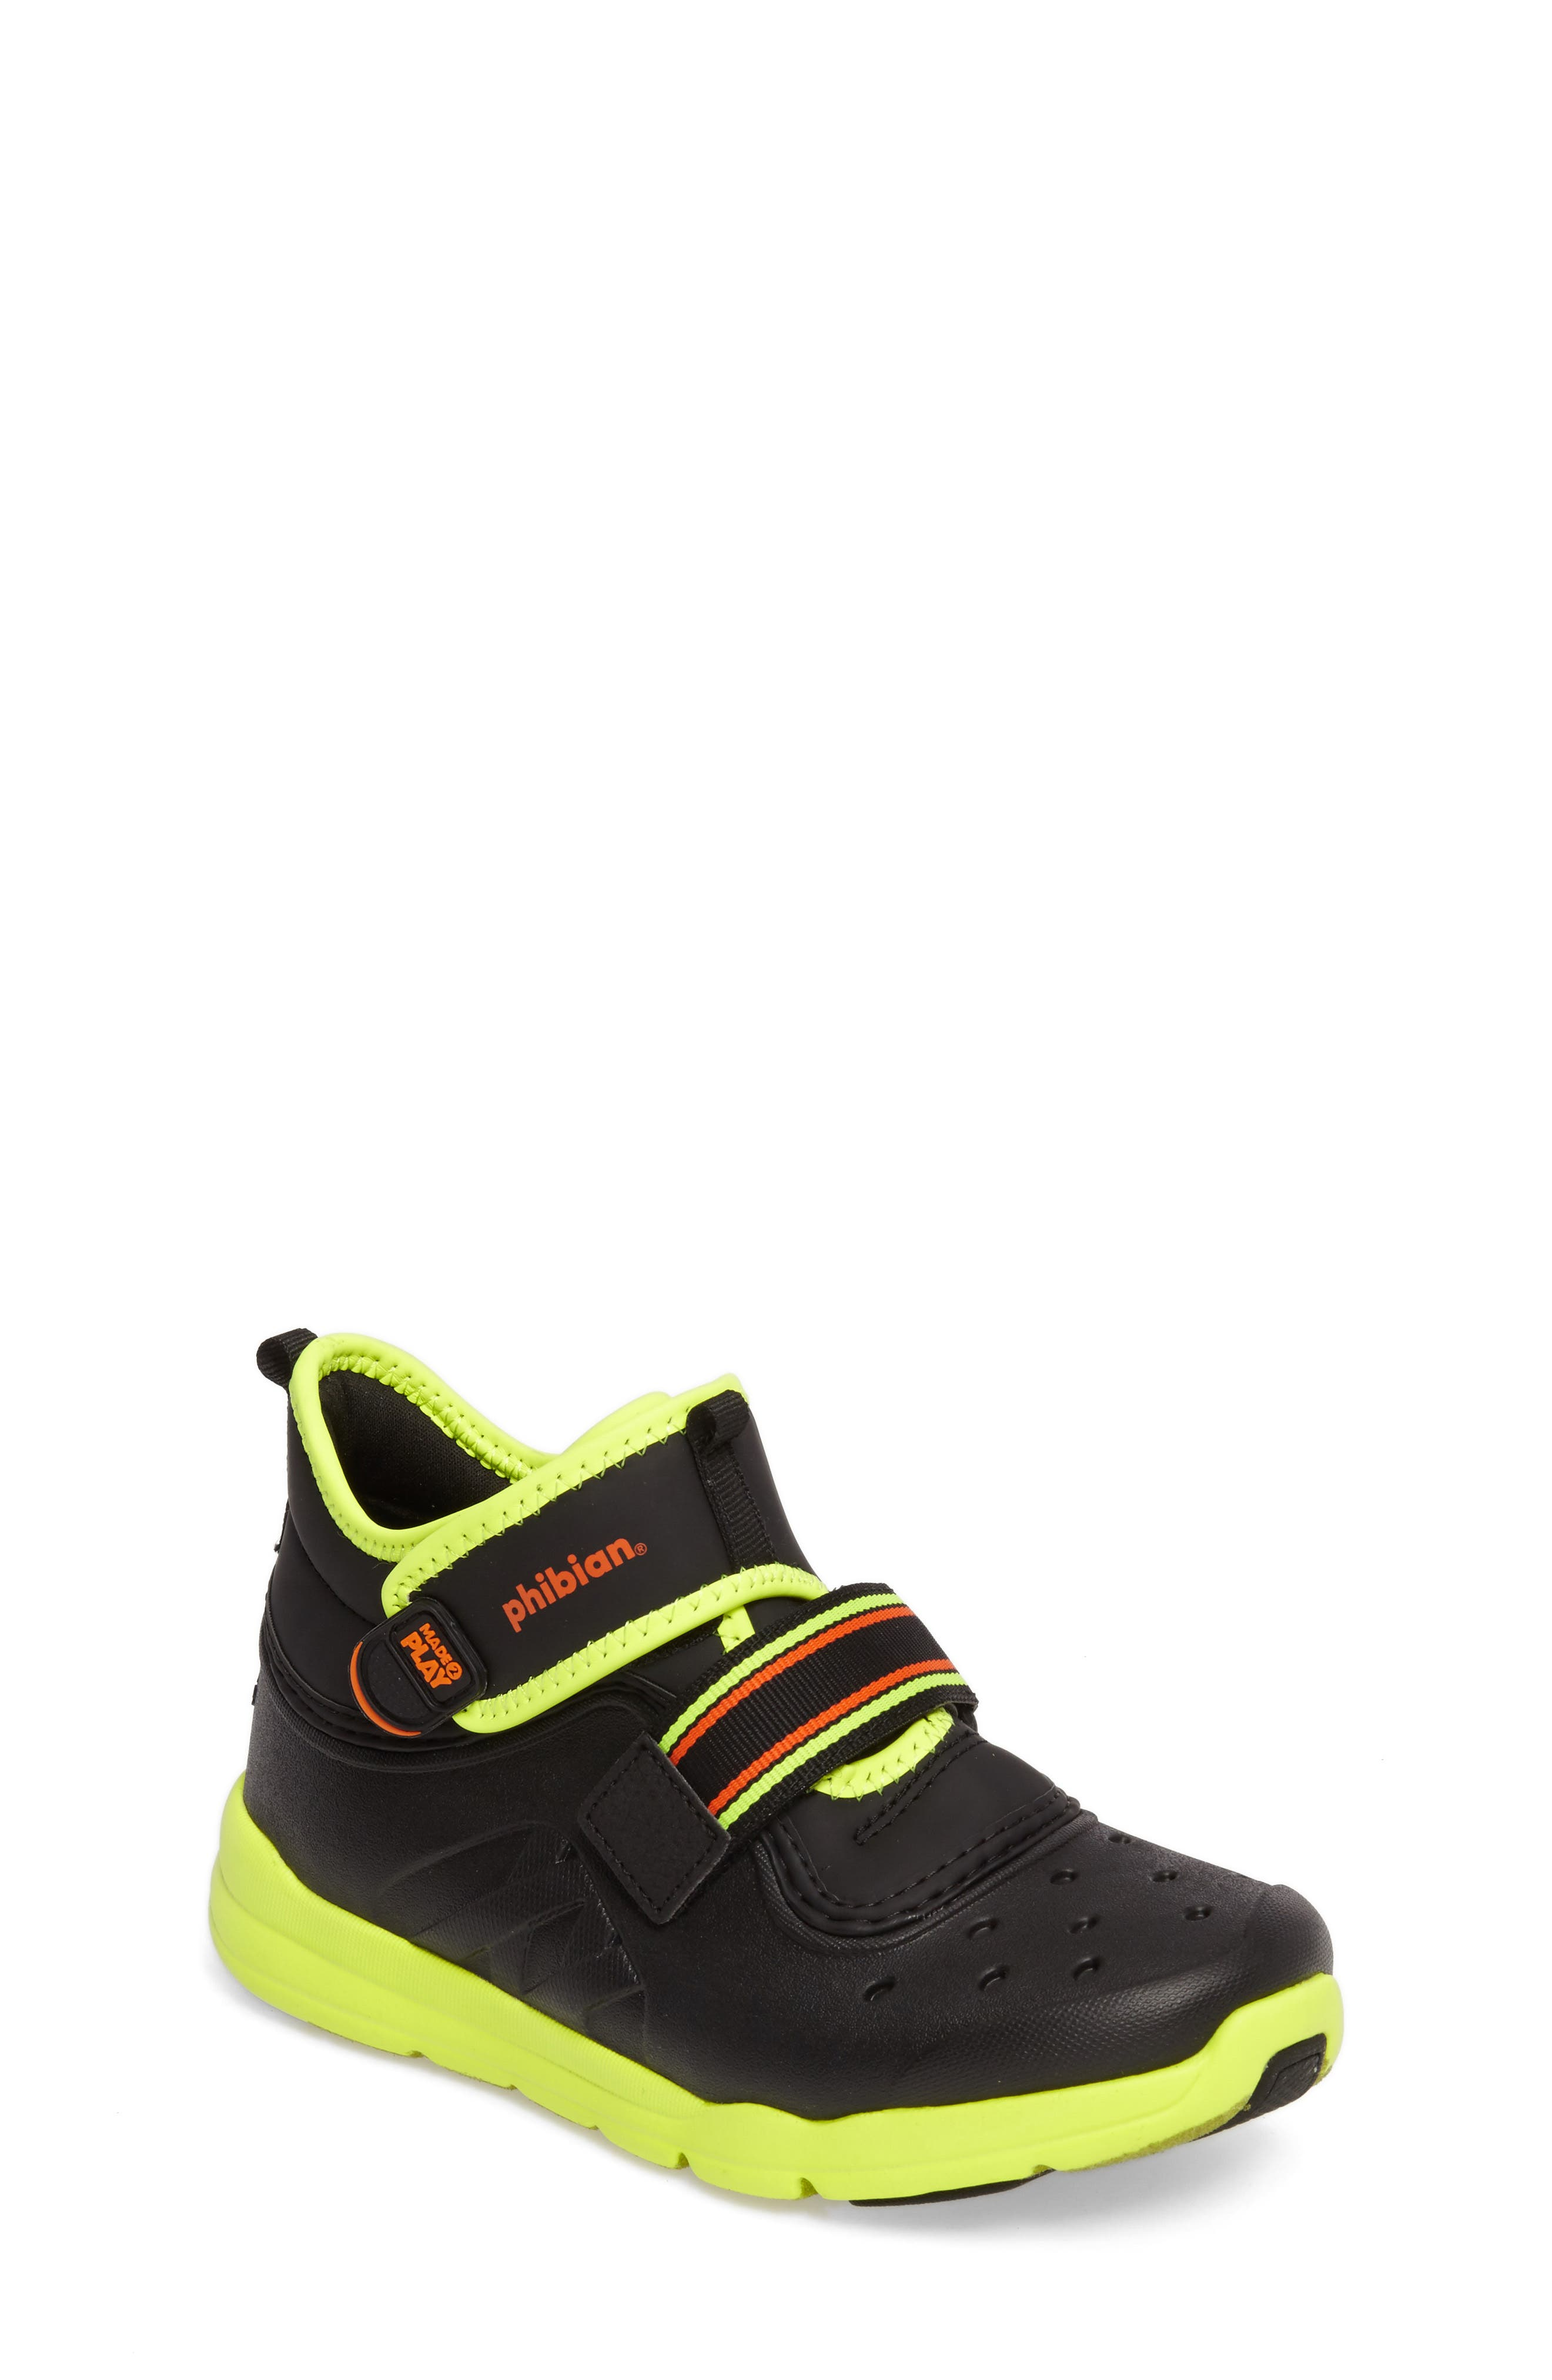 Made2Play<sup>®</sup> Phibian Mid Top Sneaker,                         Main,                         color,